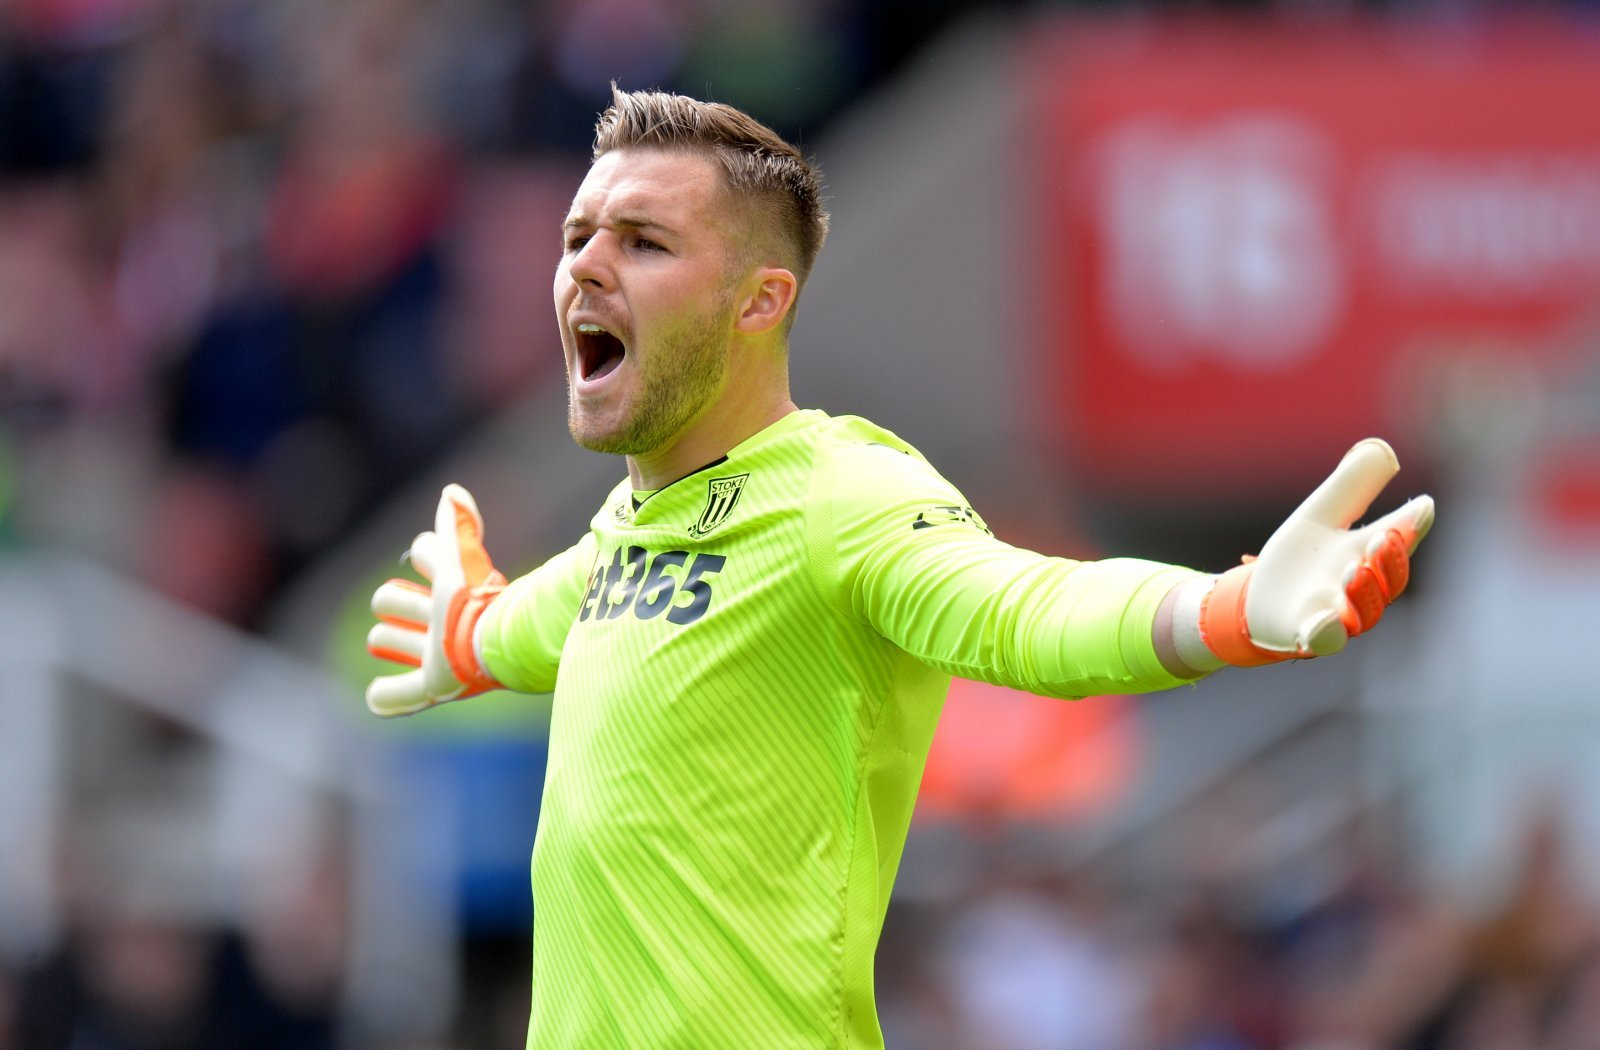 Liverpool should get rid of Mignolet and spend big on £22m-rated Championship replacement